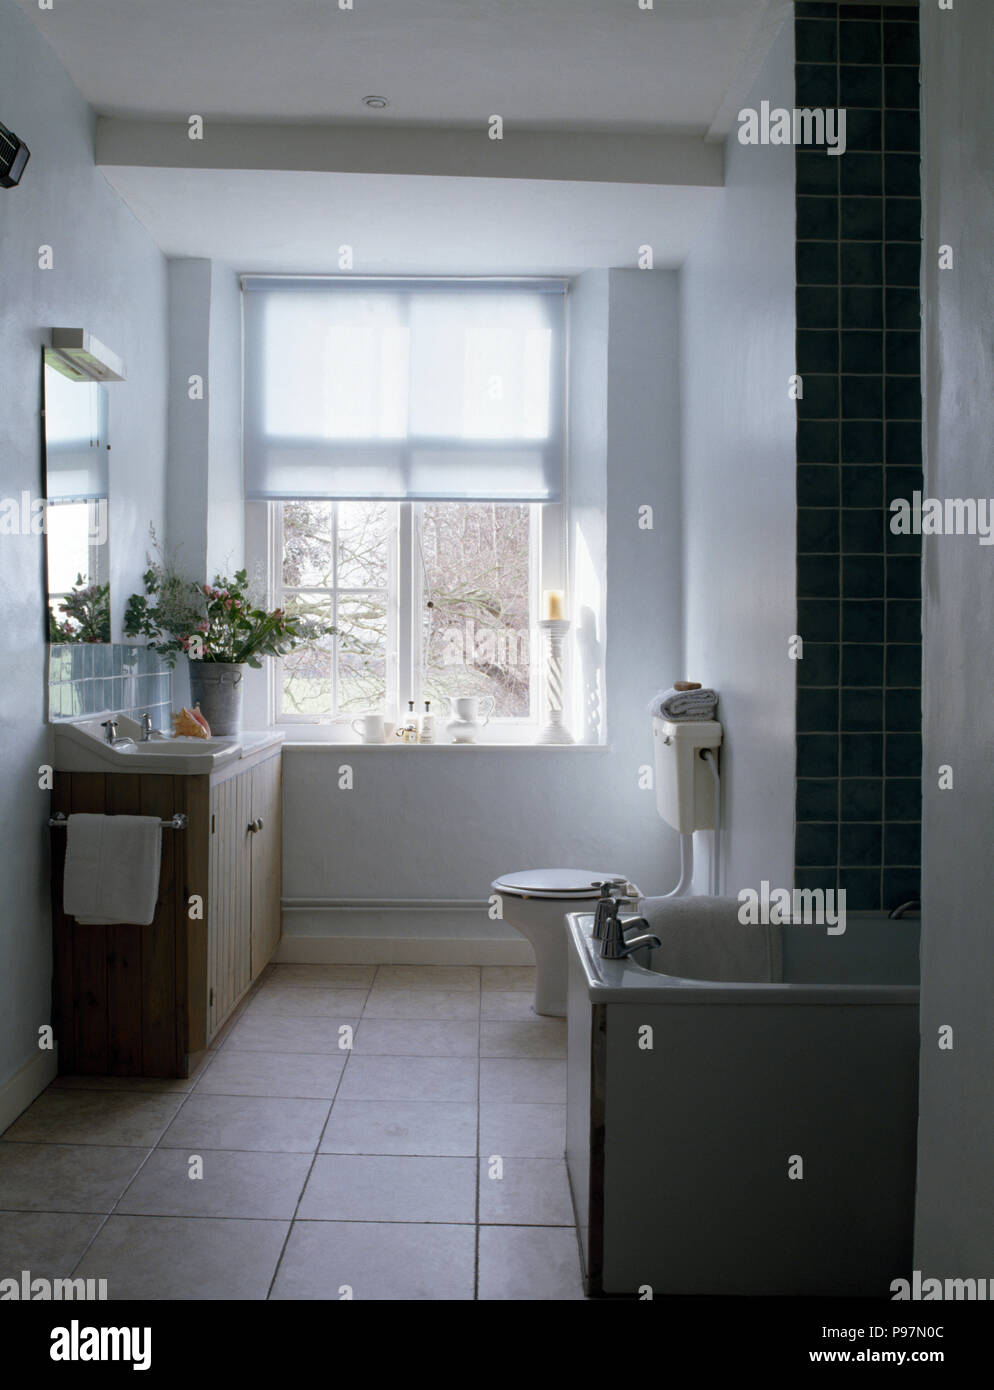 Tende Finestra Bagno Moderne.White Blind On Window In A Modern Bathroom With A White Tiled